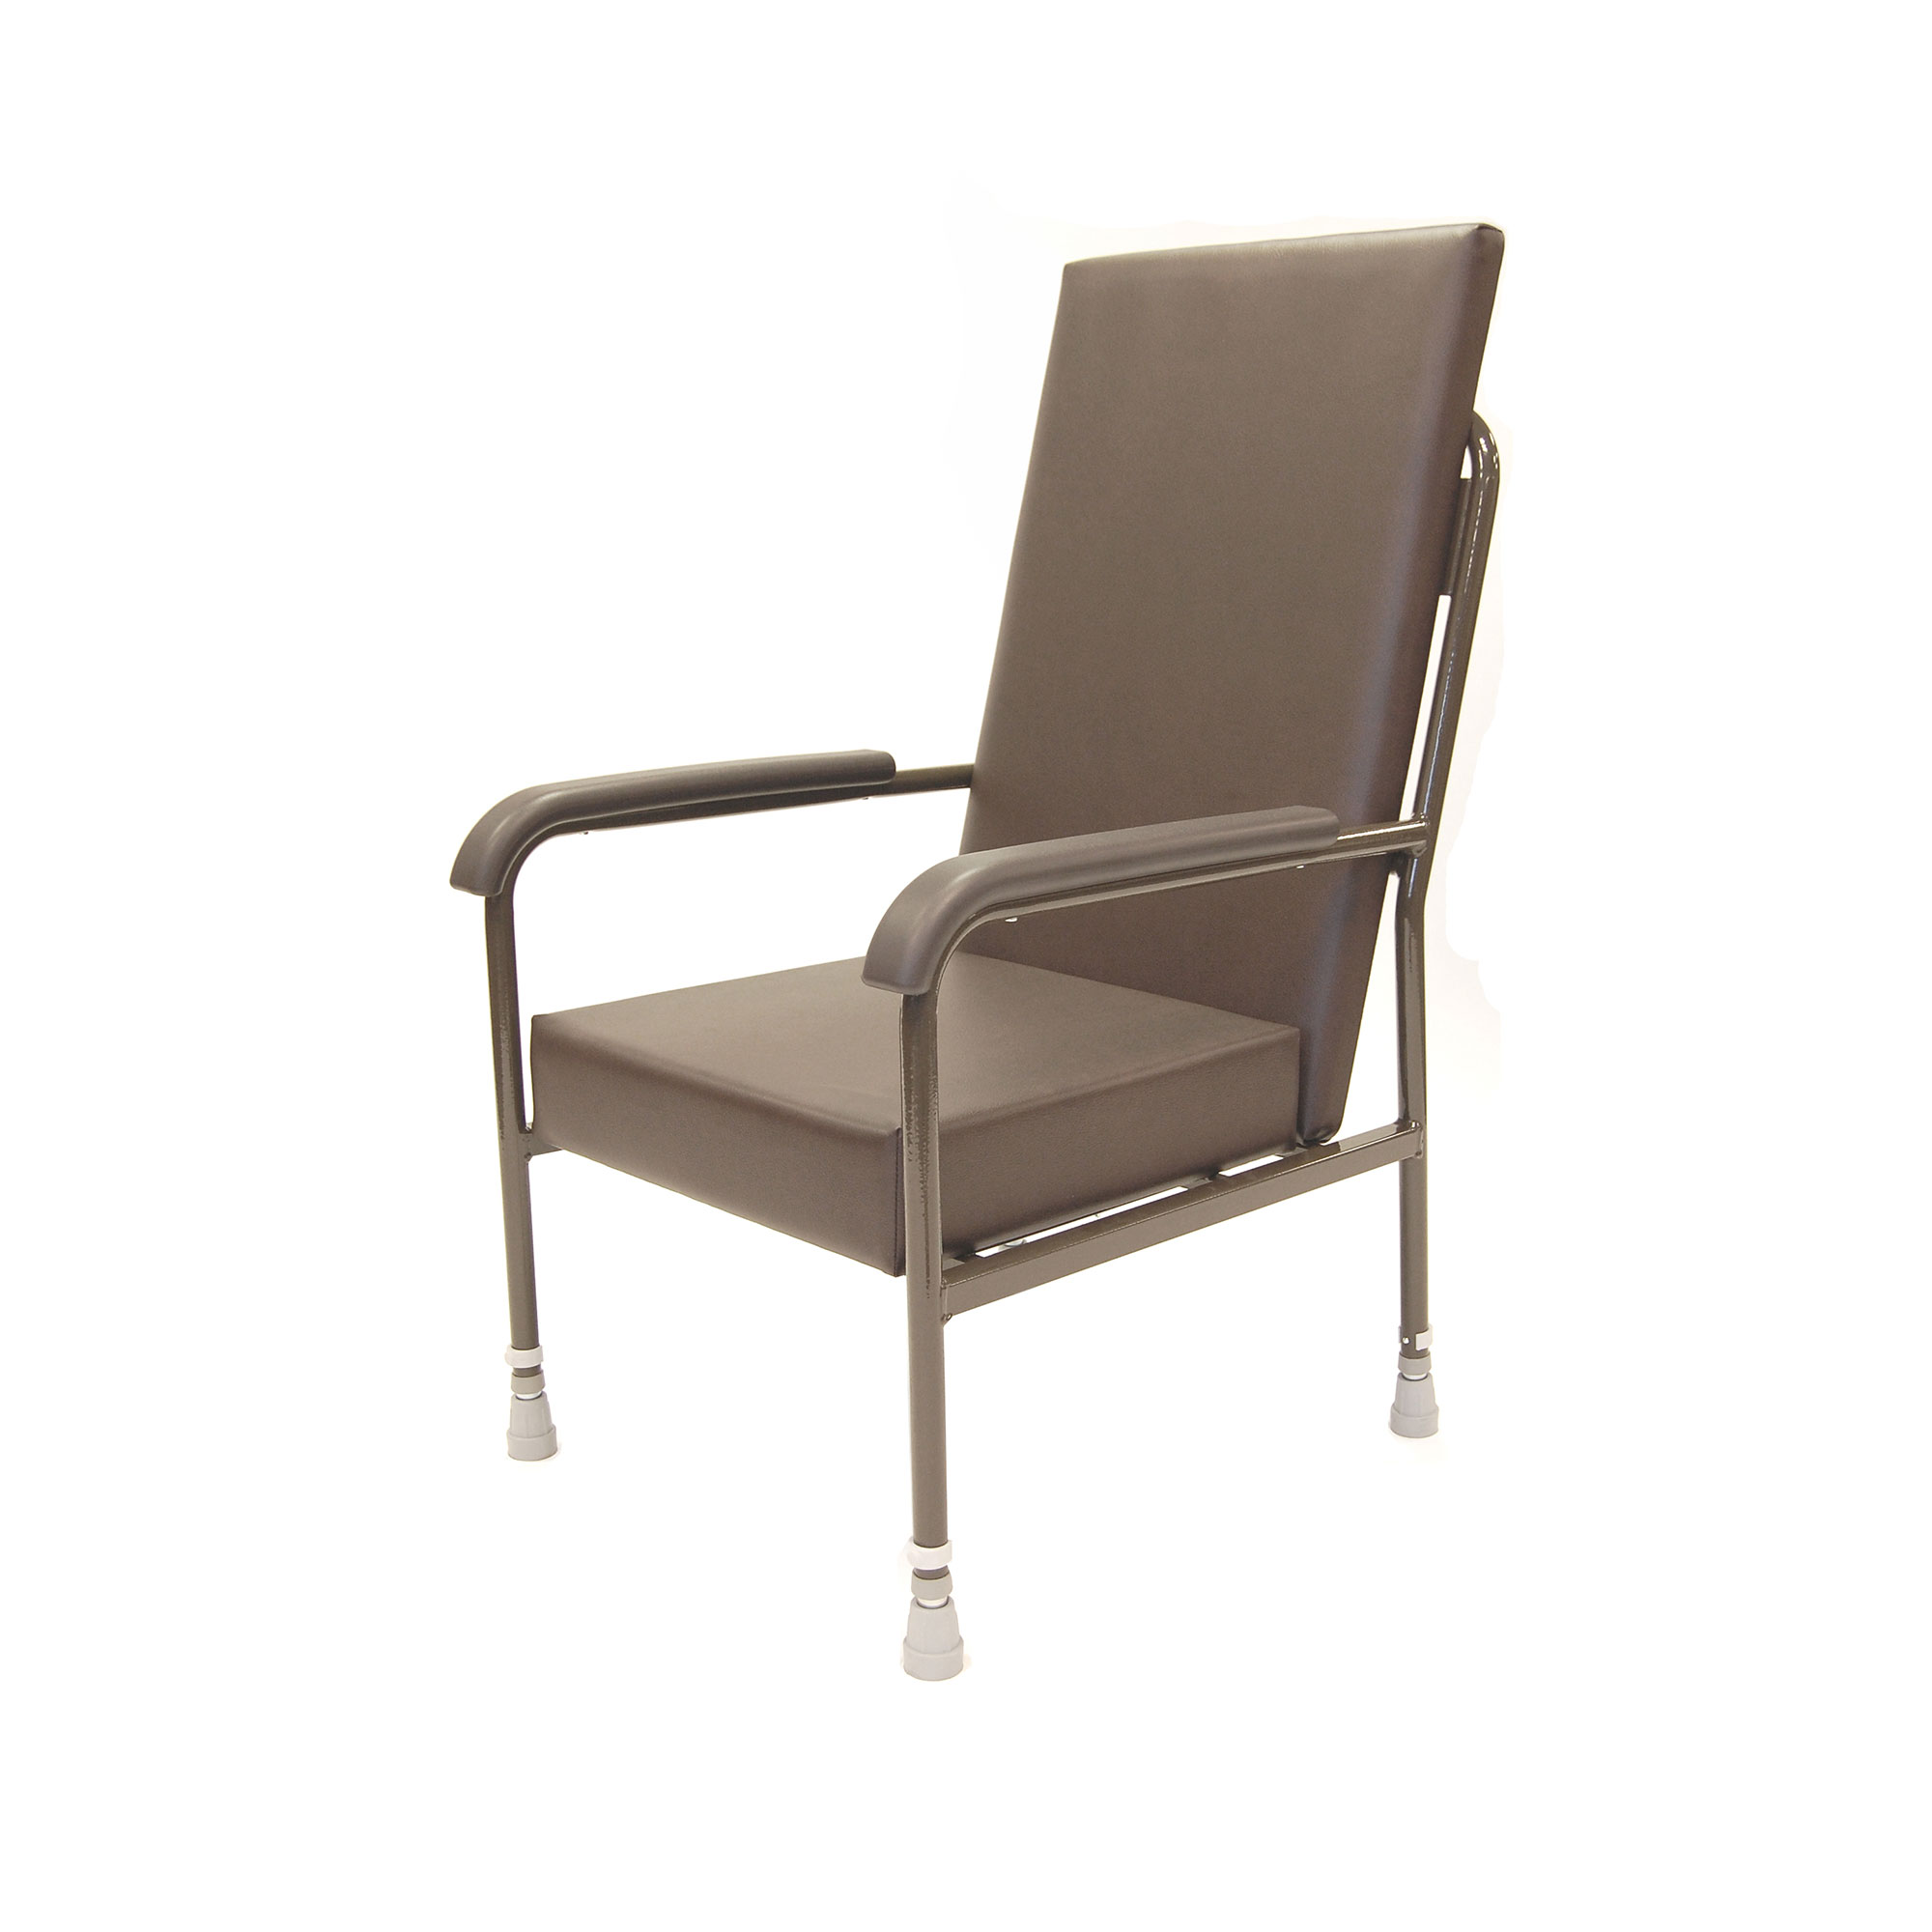 5718 High Back Vinyl Upholstery Chair without Wings Roma Medical